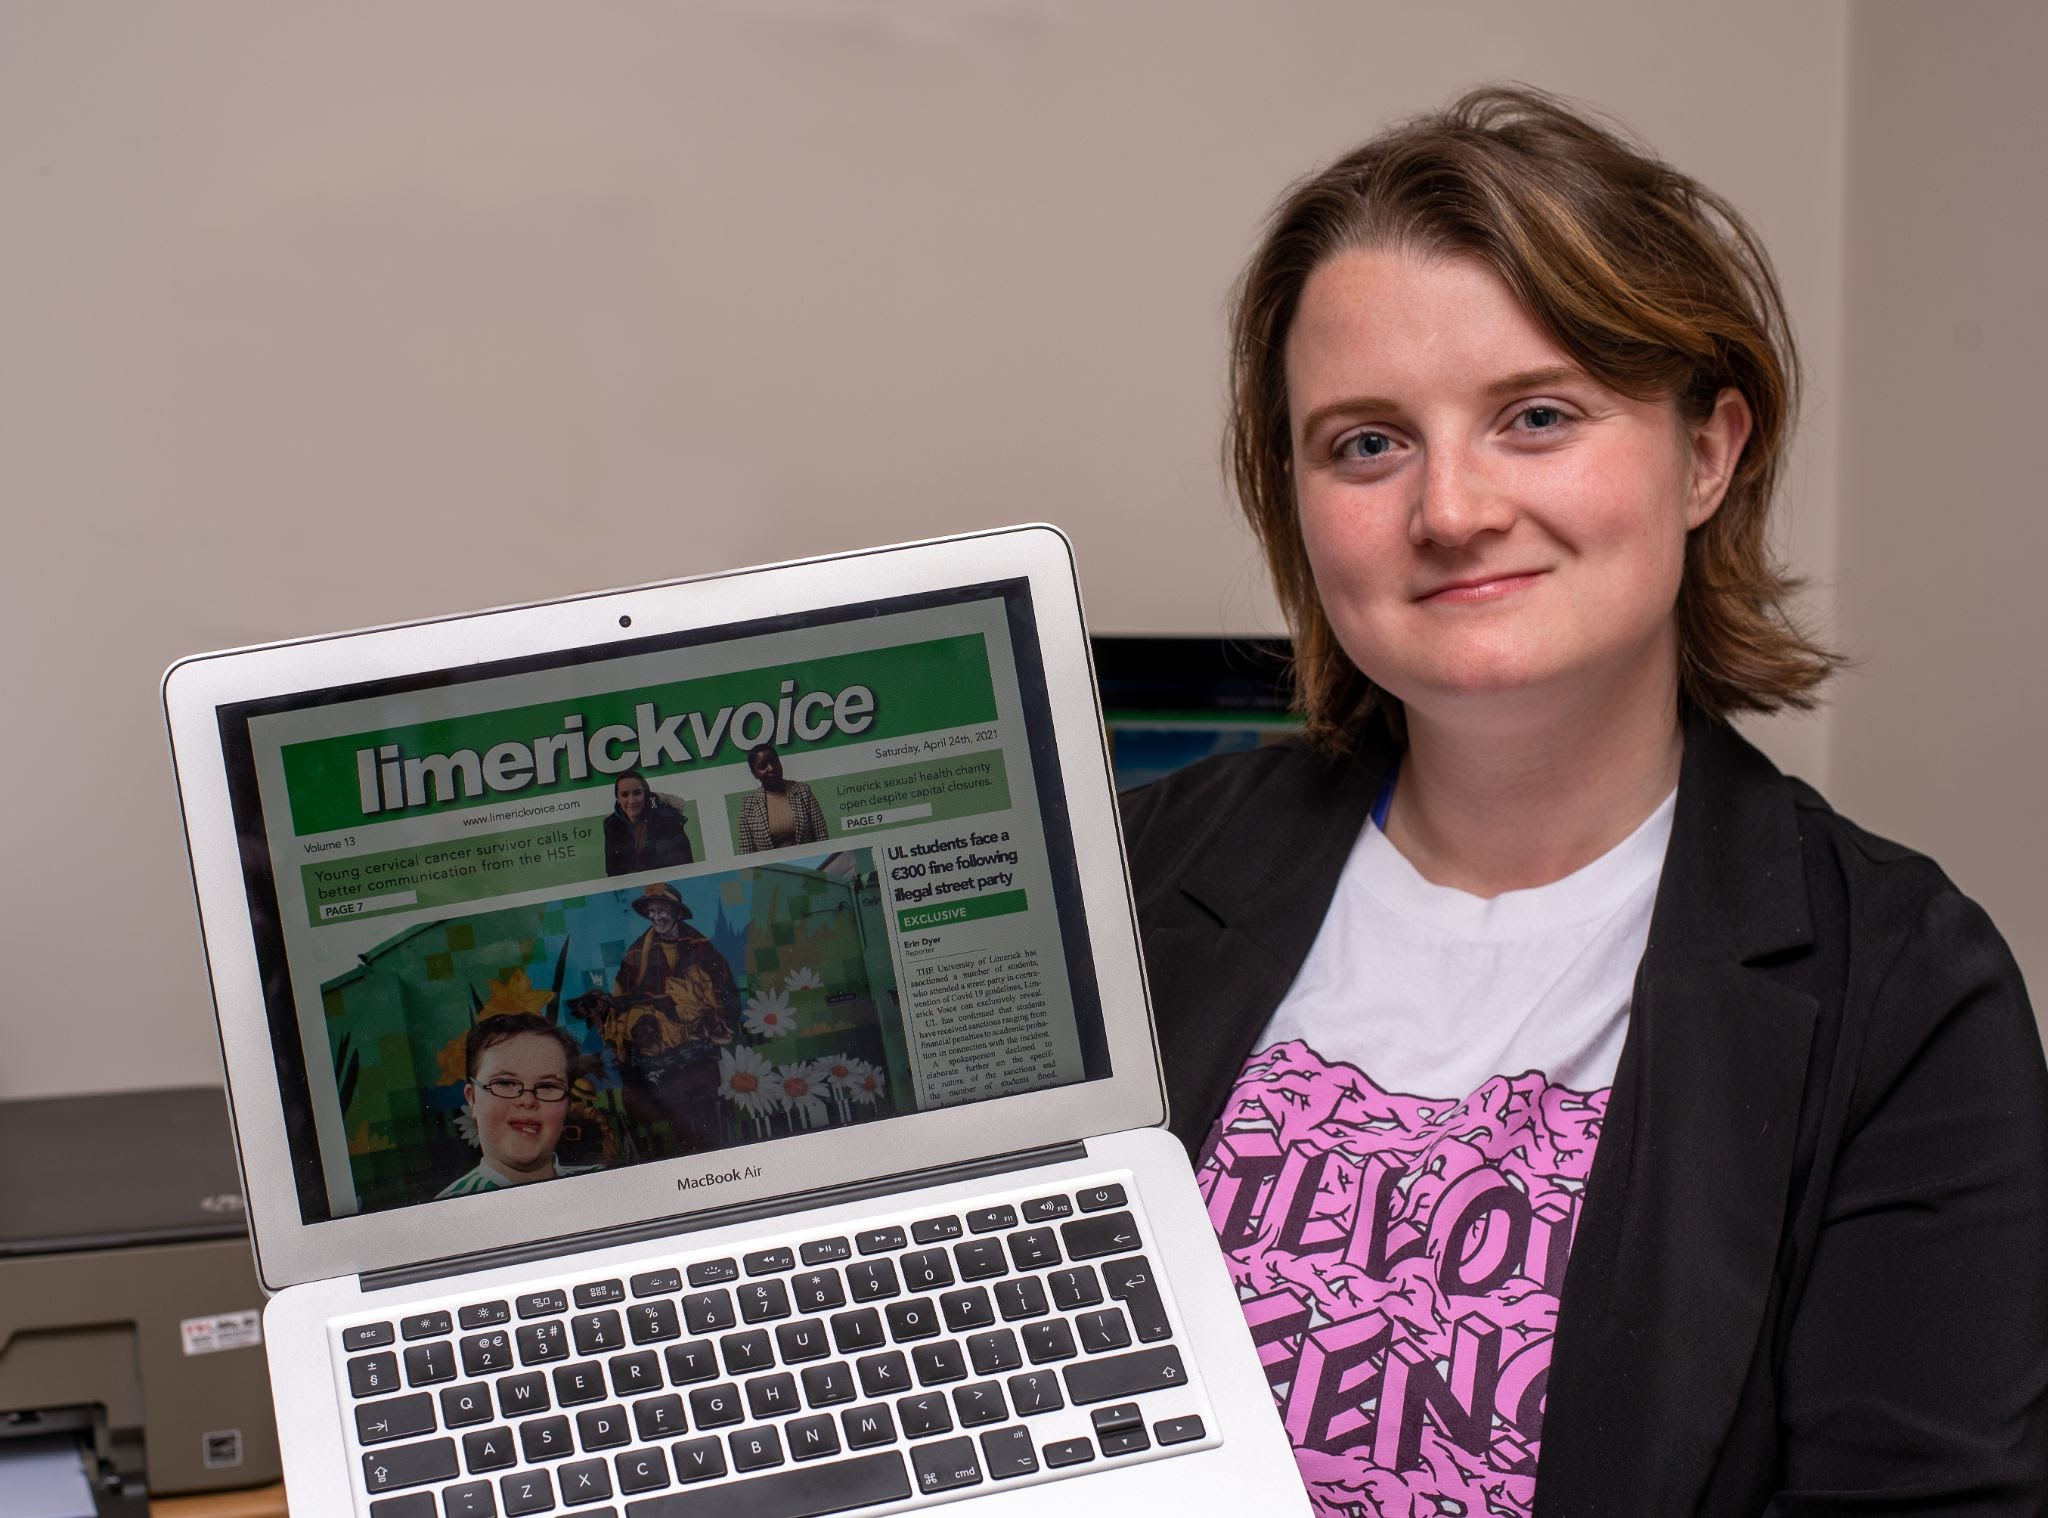 Limerick Voice newspaper Editor 2021 Christine Costello pictured above with Limerick Voice front page